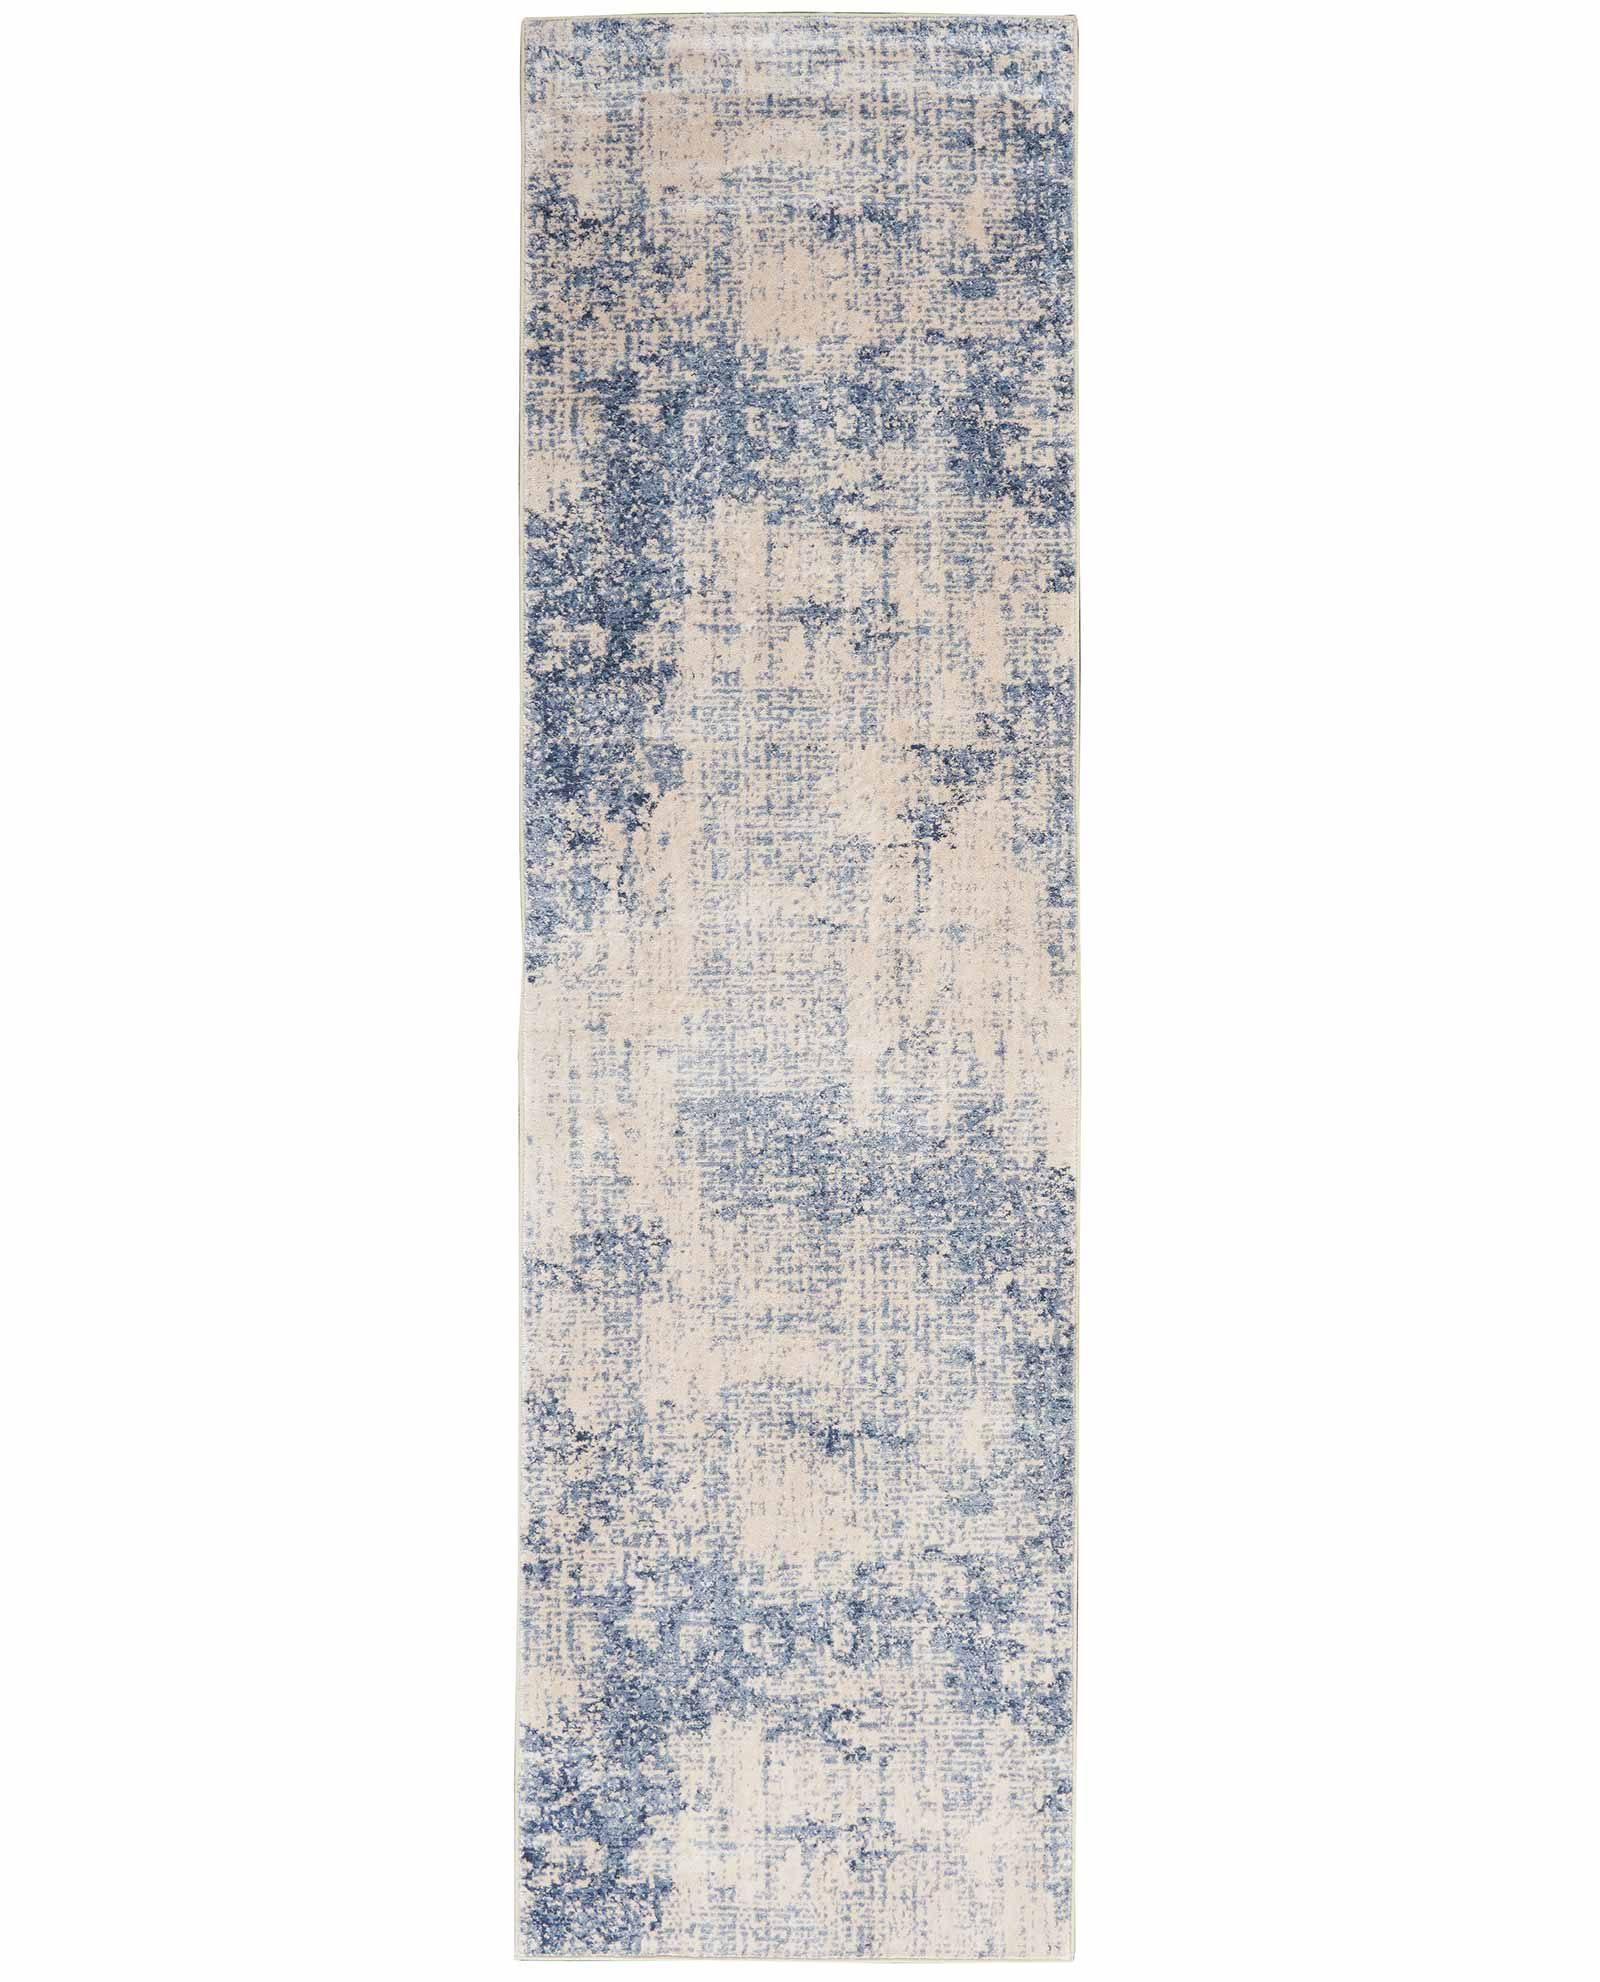 Nourison rug Silky Textures SLY01 IVORY BLUE 2x8 099446709653 flat